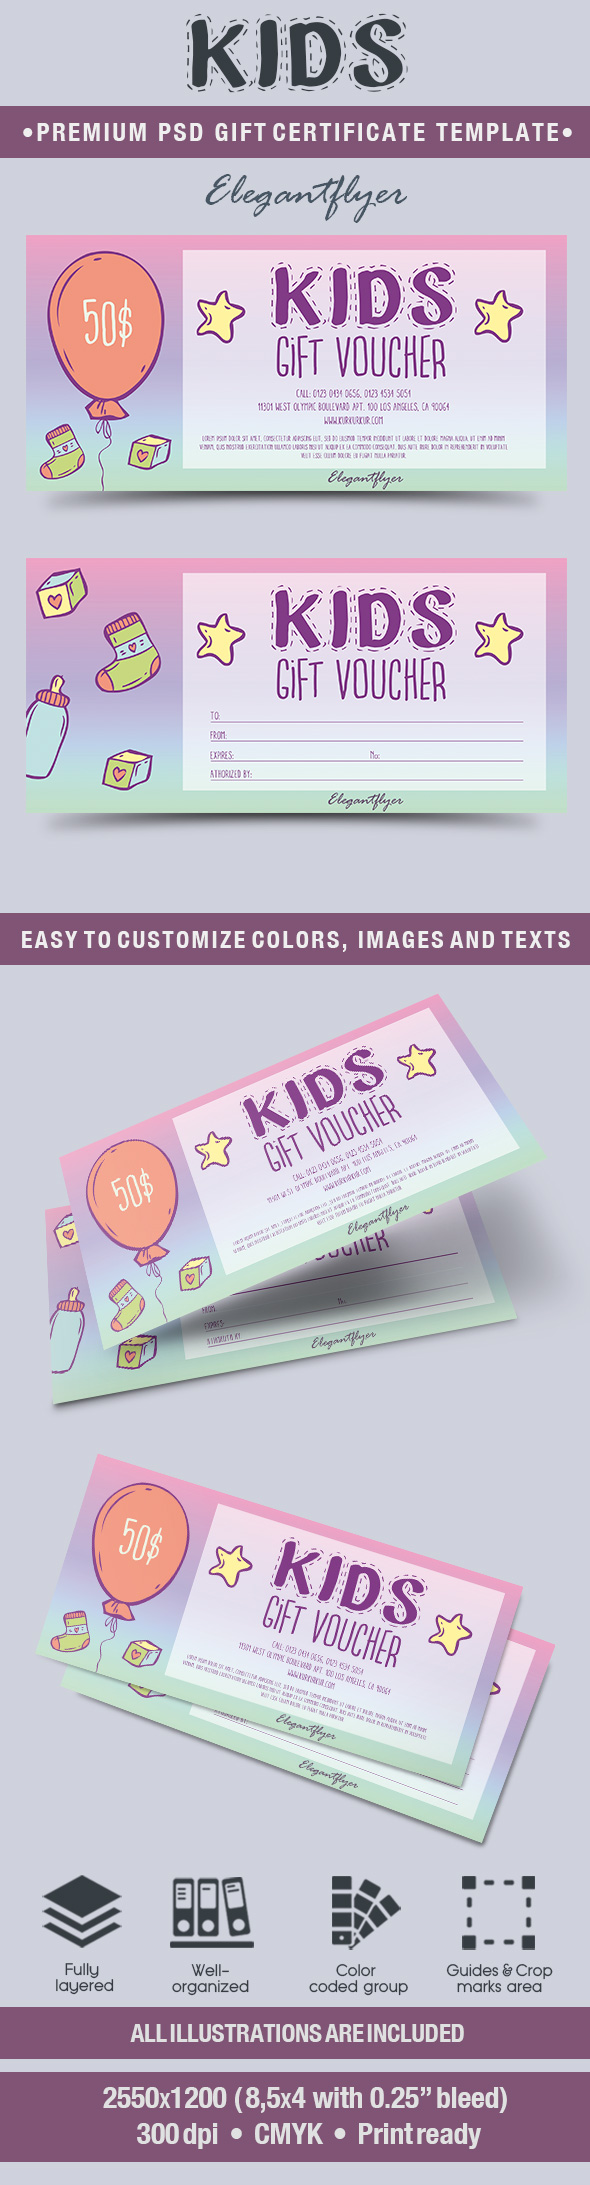 picture regarding Printable Gift Certificate Template called Printable Present Certification Templates for Children